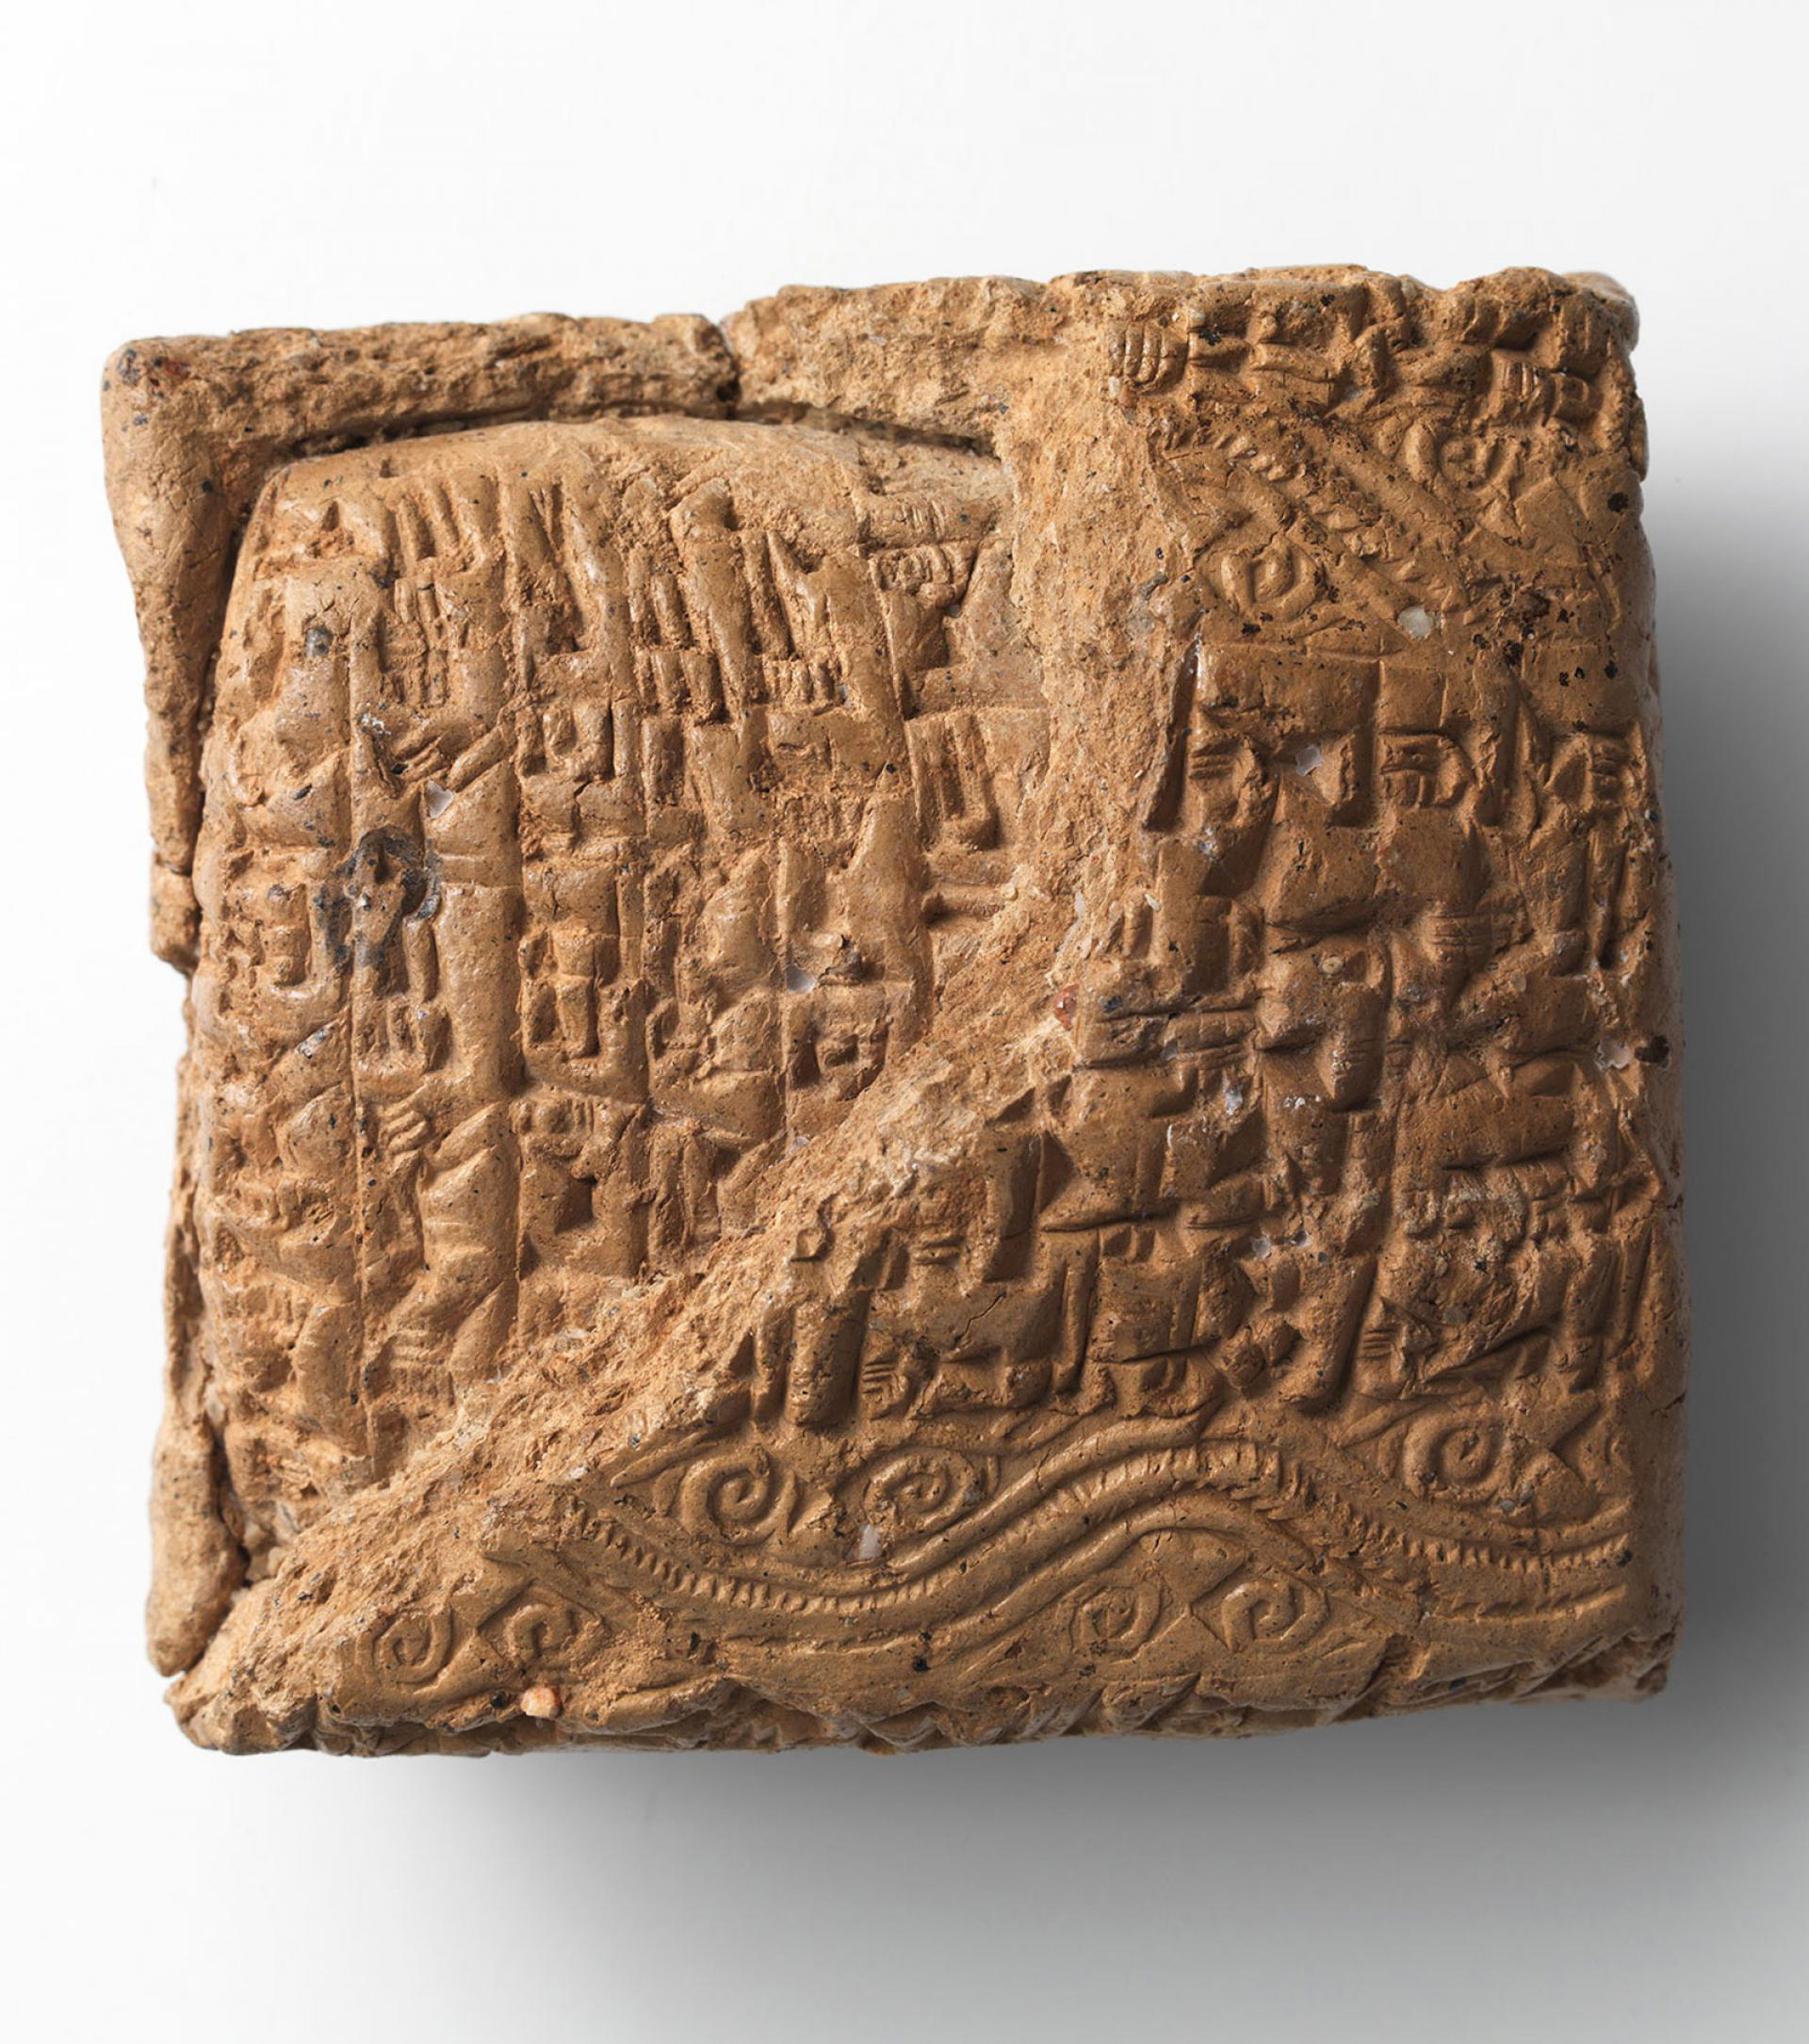 SHM 9472 - Tablet with envelopeTerracottaOld Assyrian Trade Colonies PeriodFirst quarter of 2nd millenium BCCentral Anatolia